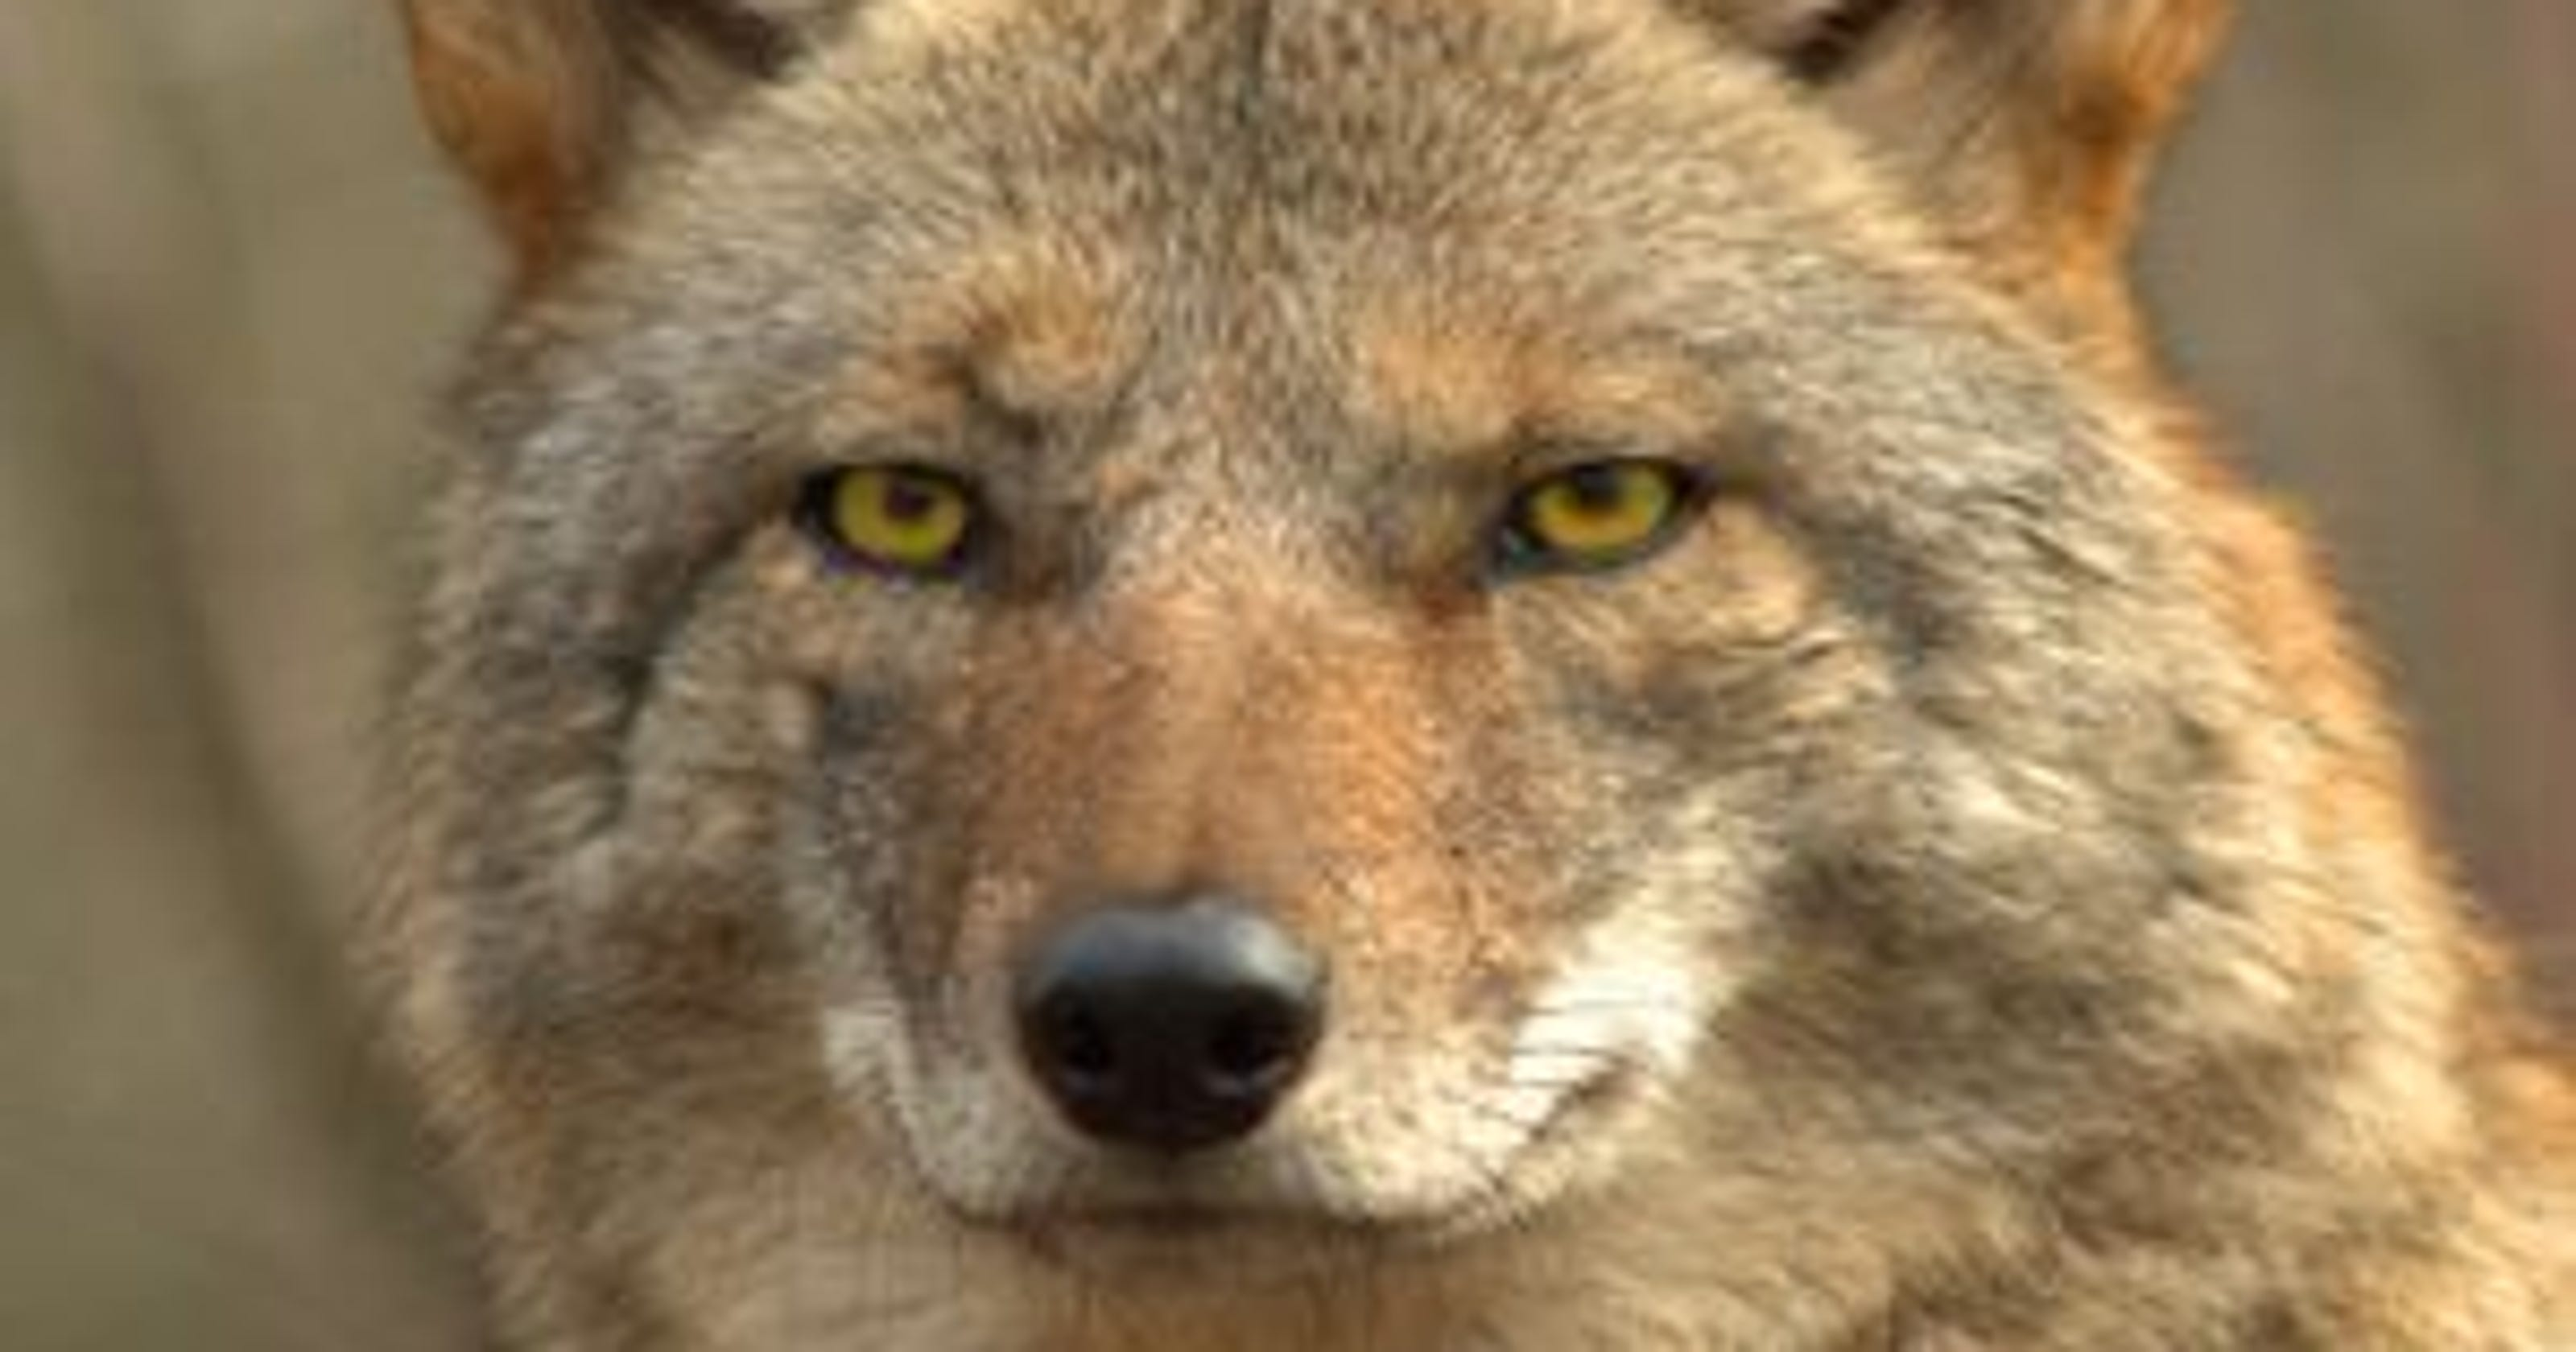 Michigan coyotes more visible than usual, DNR warns